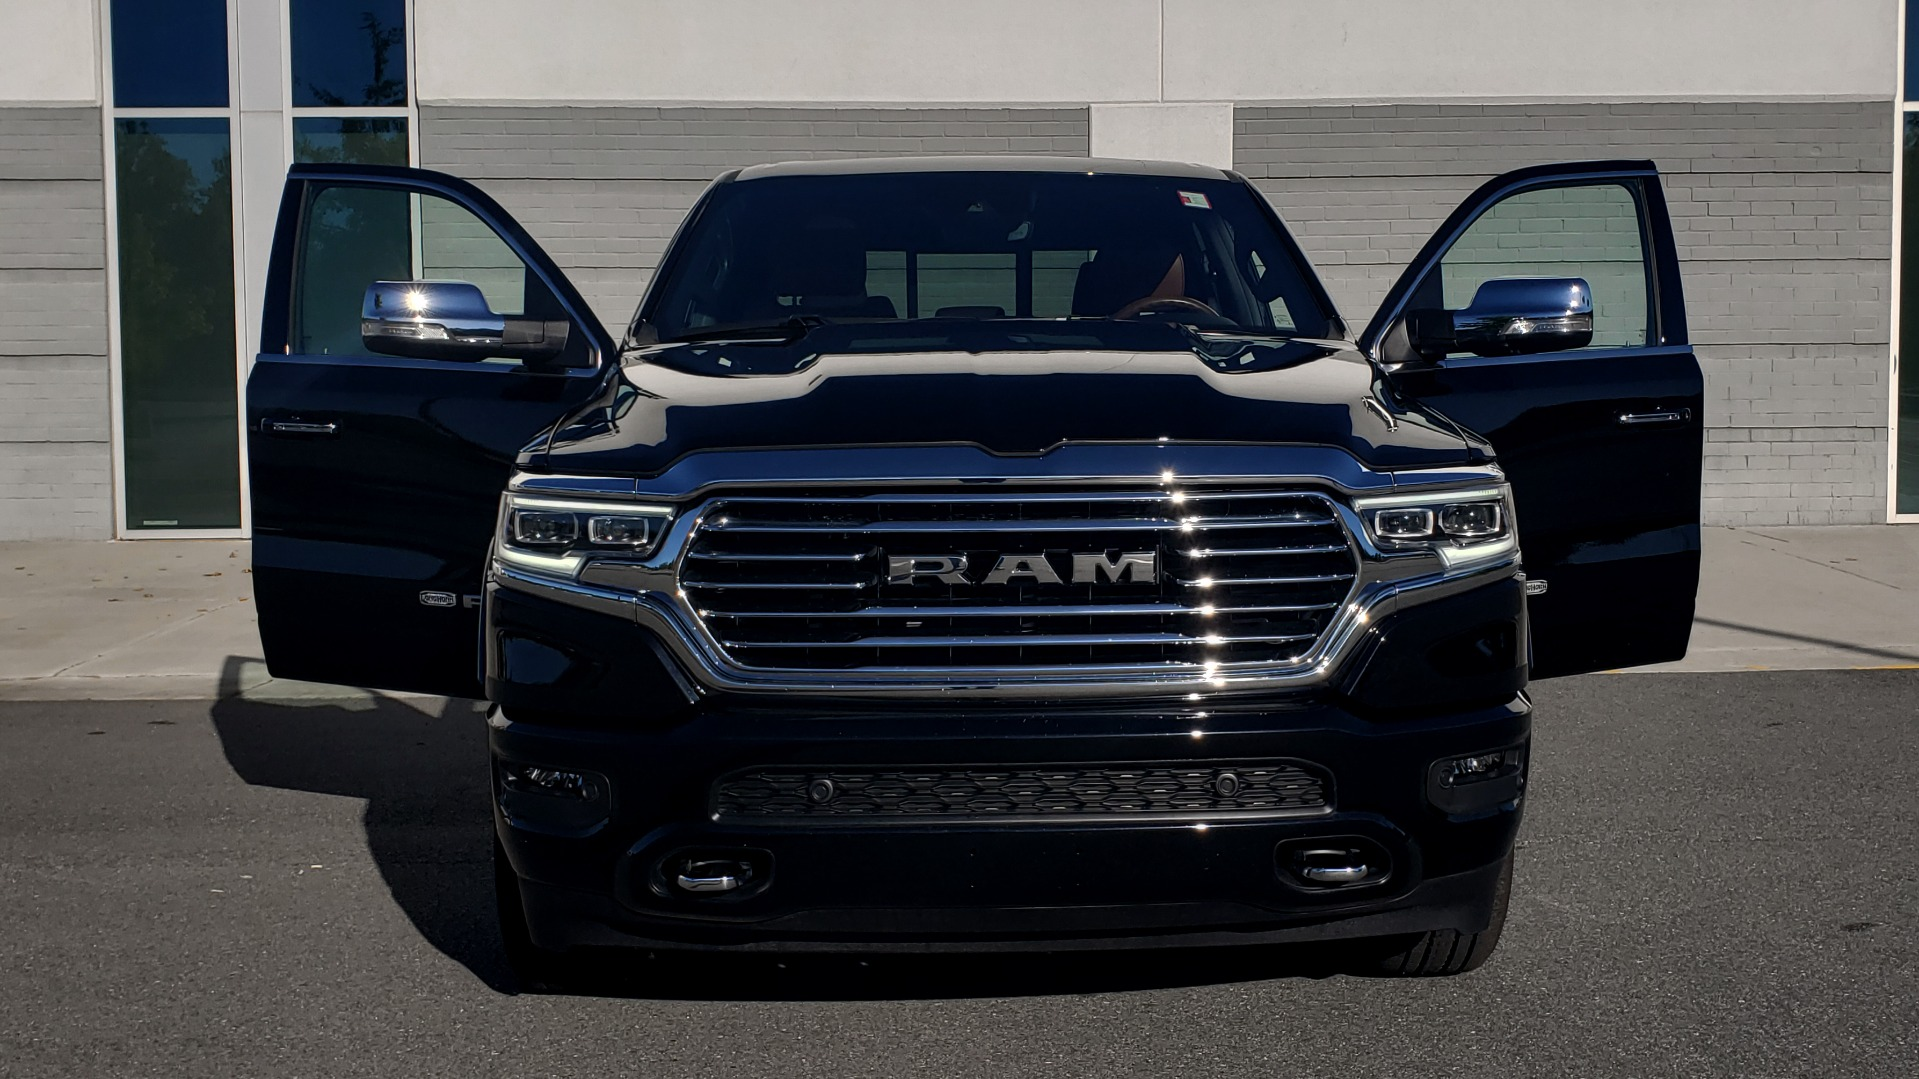 Used 2021 Ram 1500 LONGHORN LIMITED 4X4 / 5.7L HEMI / CREWCAB / H/K SND / PANO-ROOF / REARVIEW for sale $65,999 at Formula Imports in Charlotte NC 28227 21